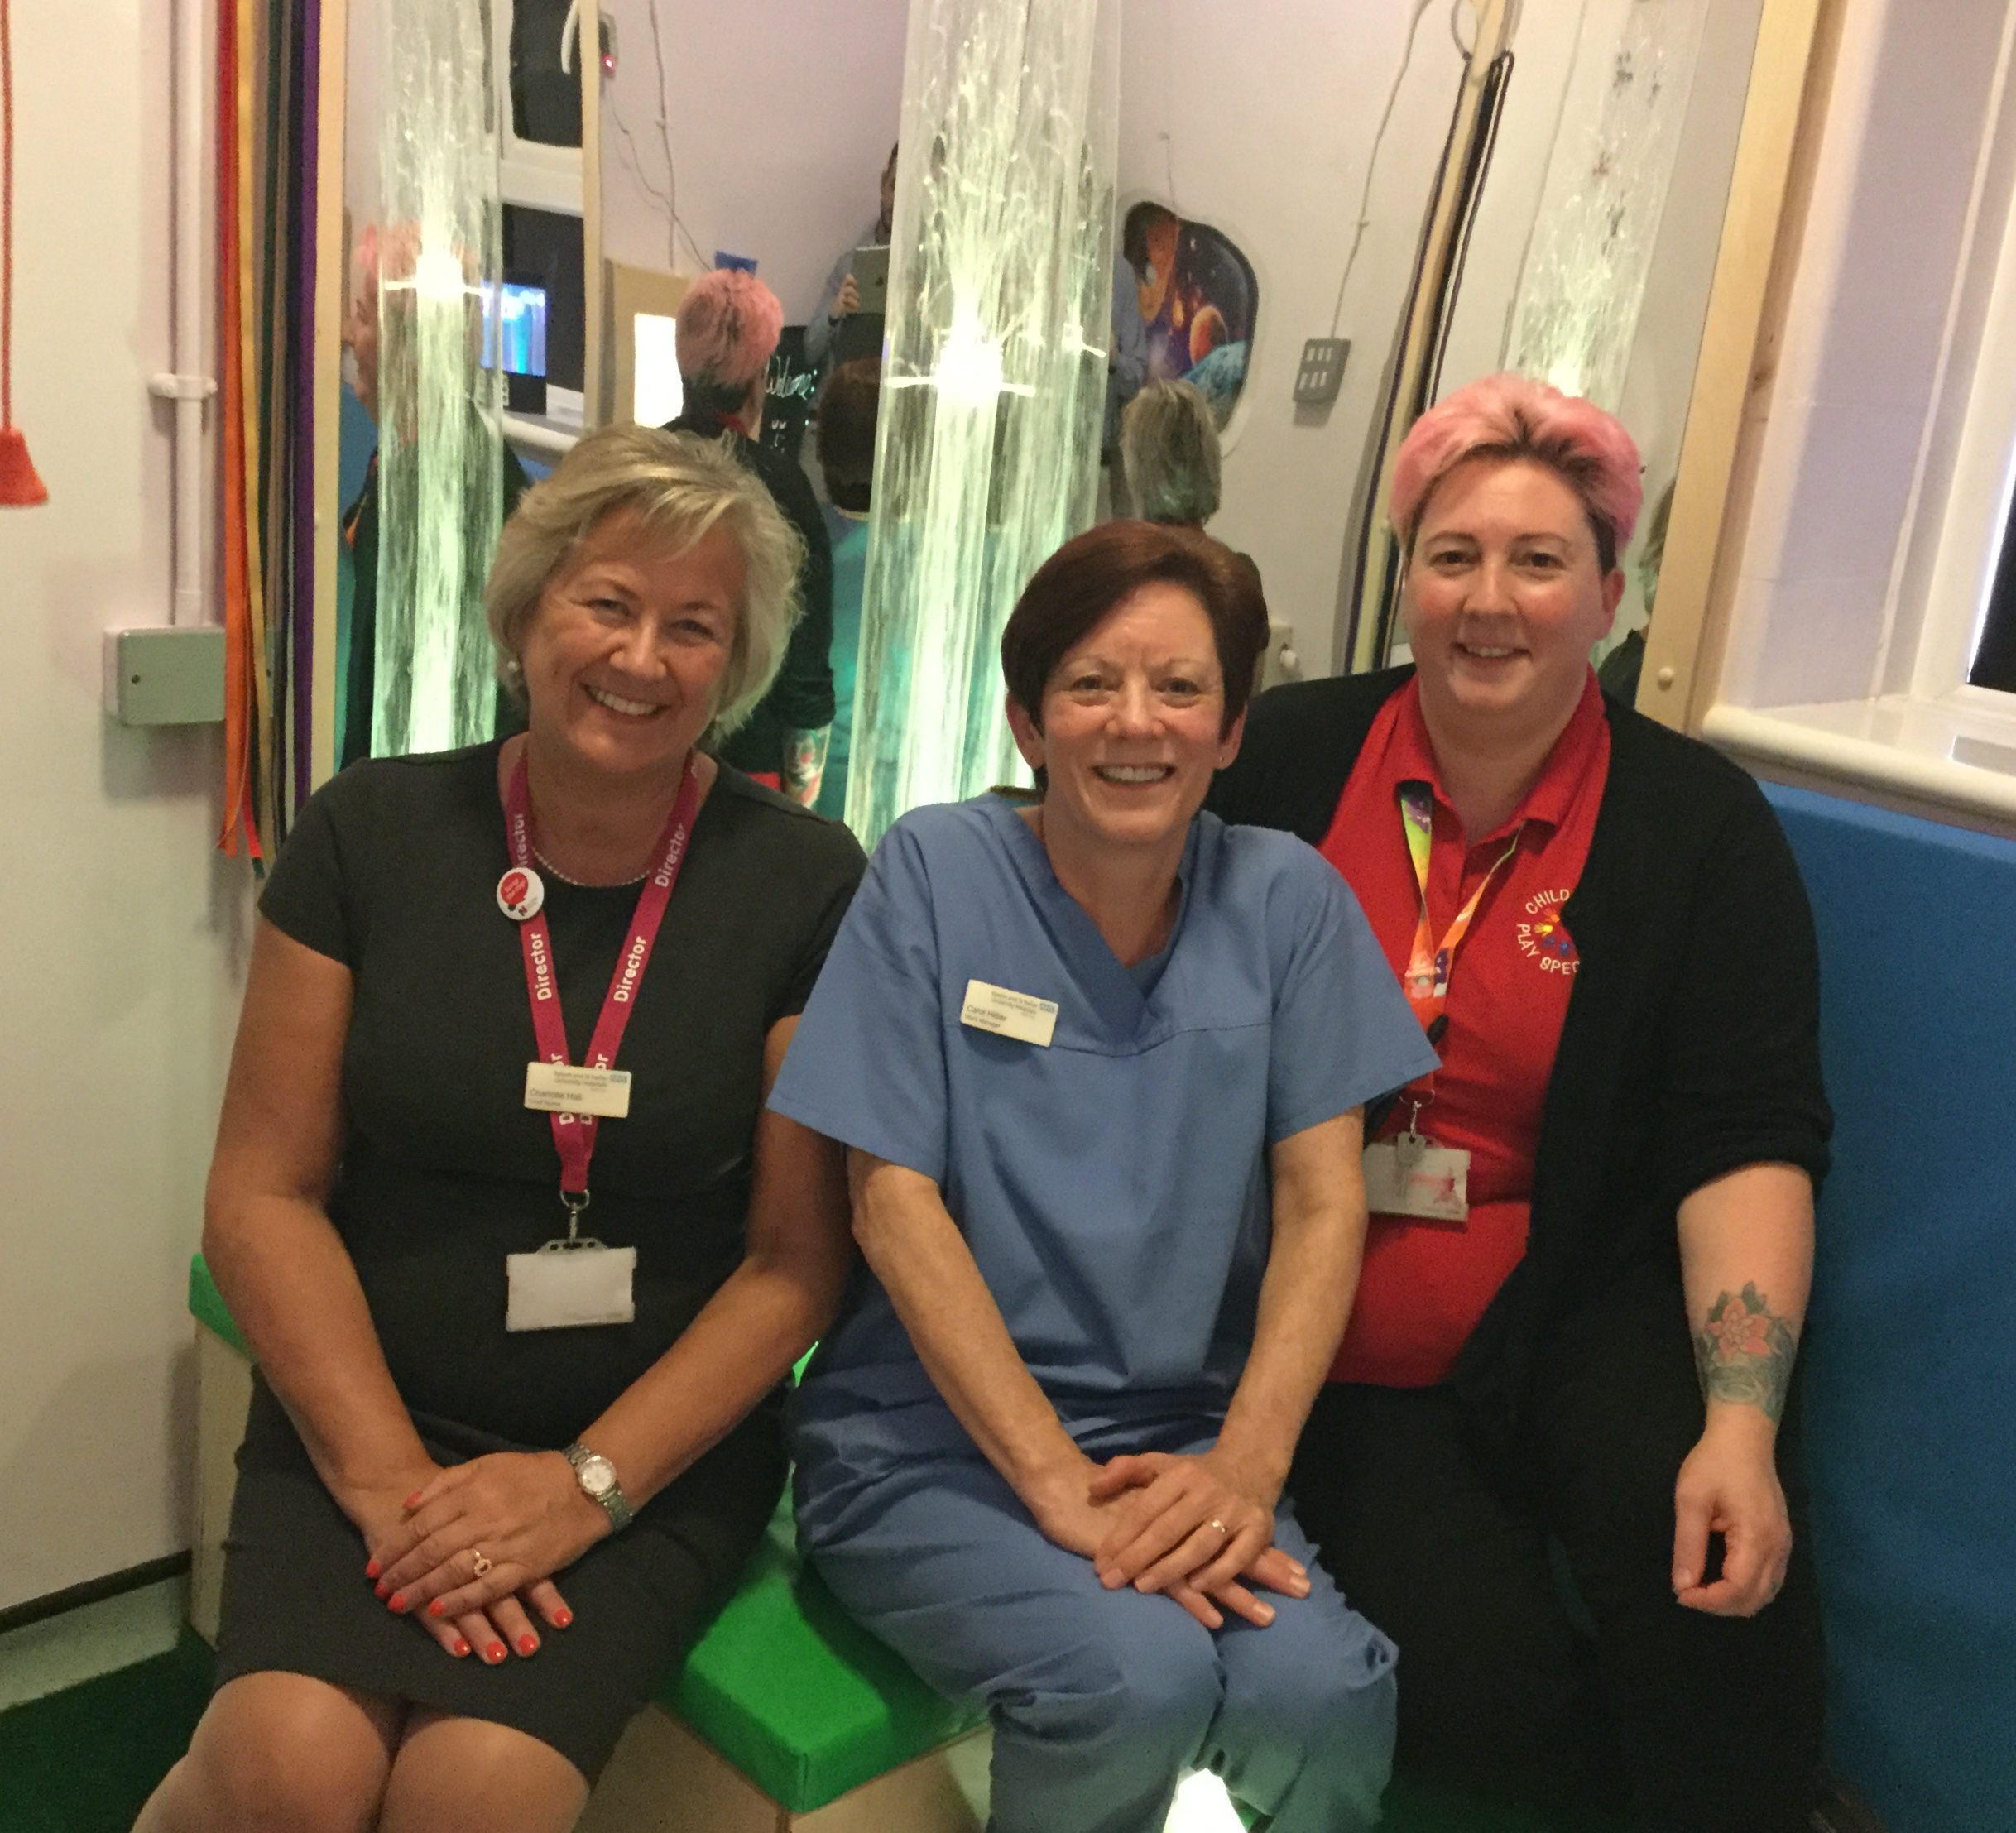 Charlotte, Carol and Zoe in St Helier's sensory room